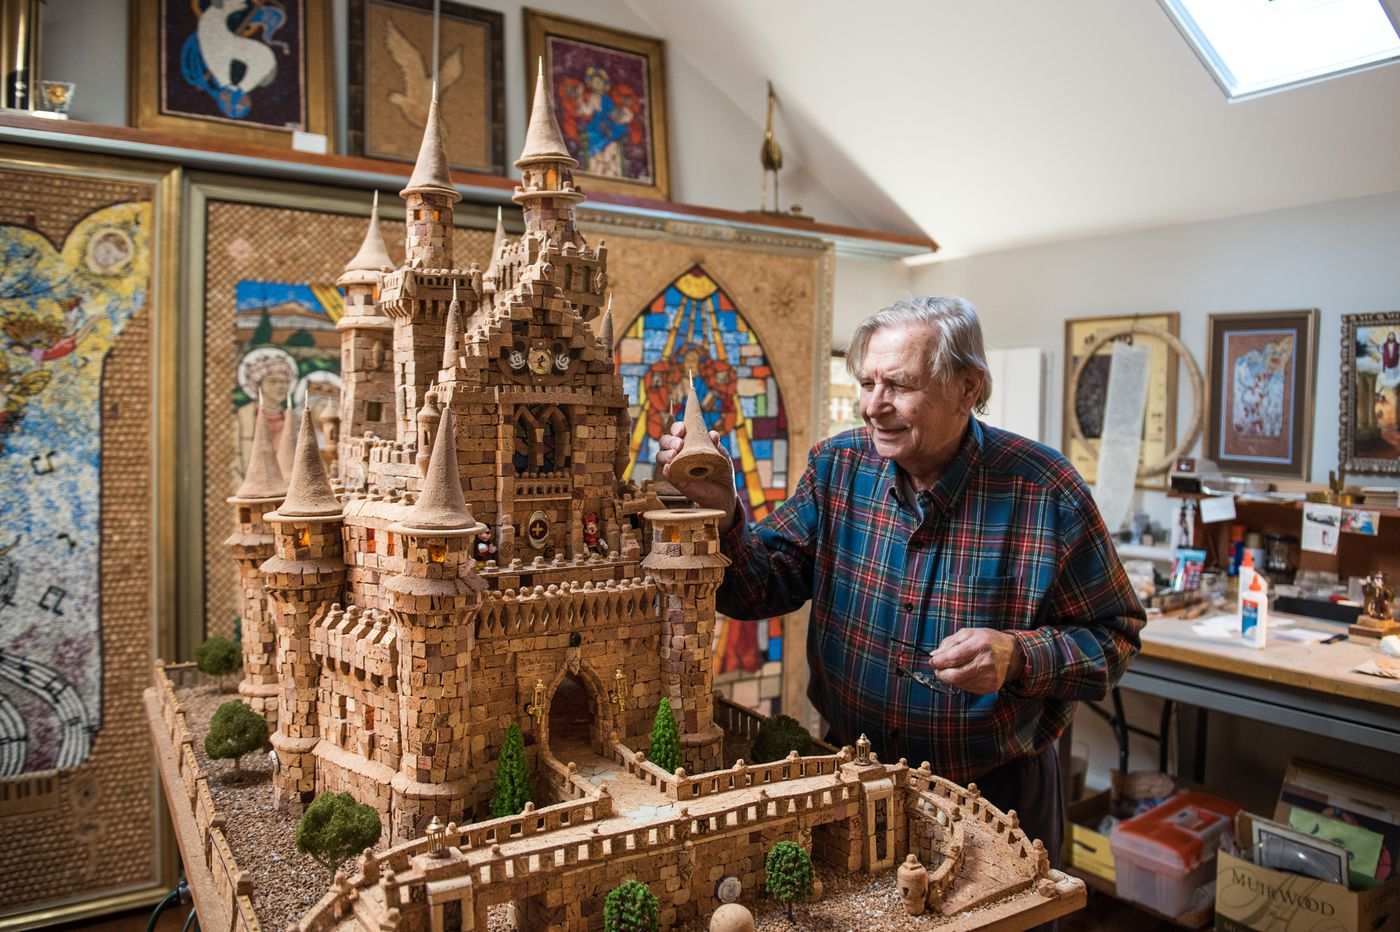 A Huntingdon Valley retiree used 7,300 corks to recreate Disney's Cinderella Castle